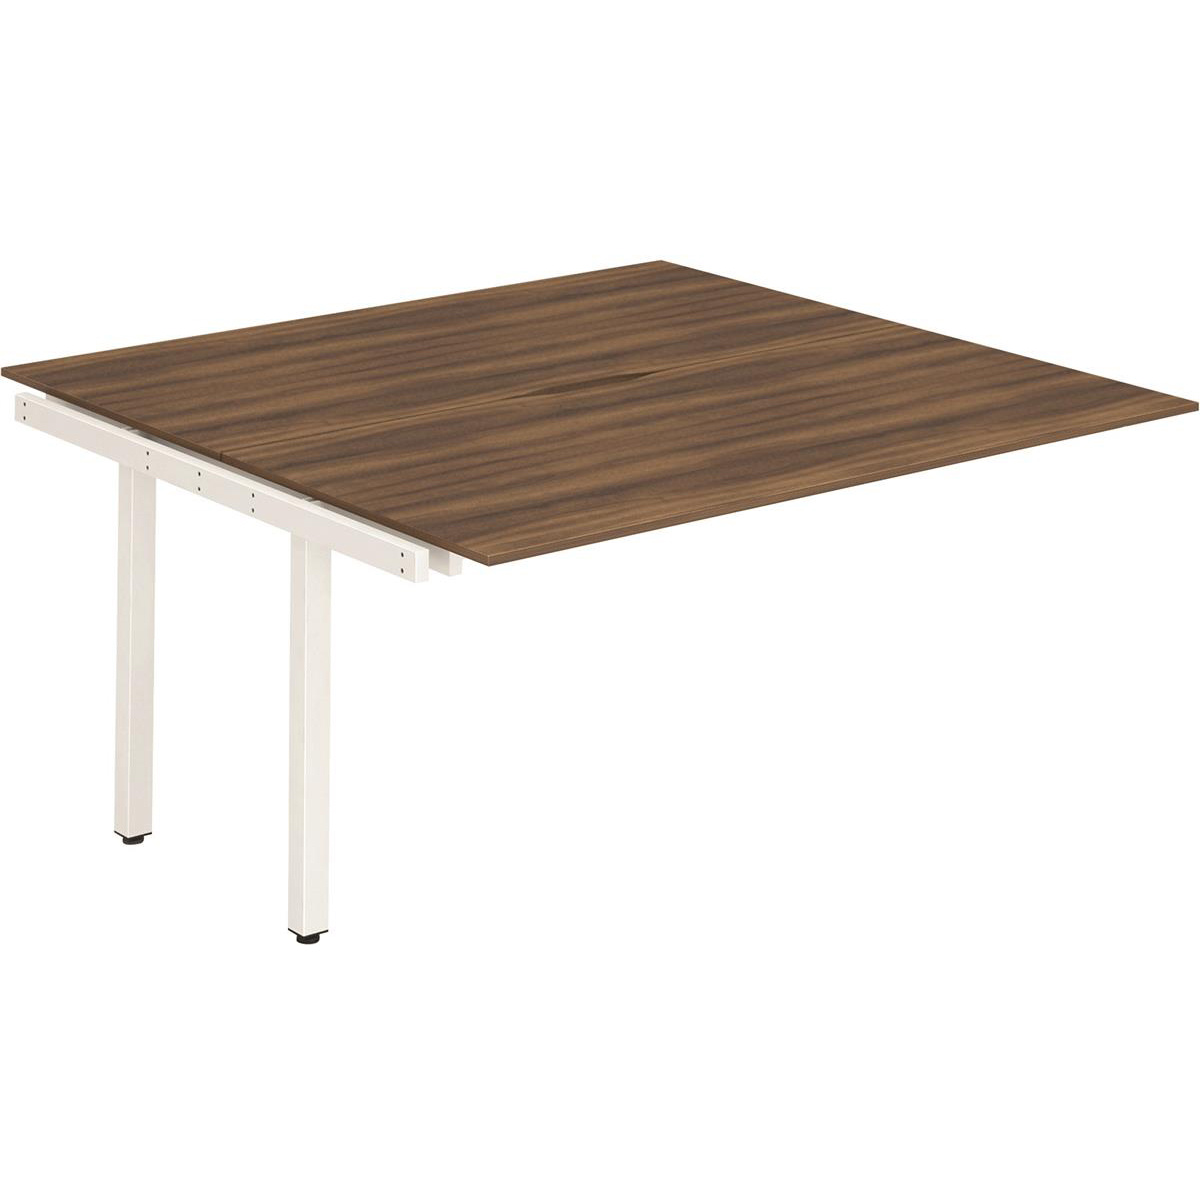 Trexus Bench Desk Double Extension Back to Back Configuration White Leg 1600x1600mm Walnut Ref BE189